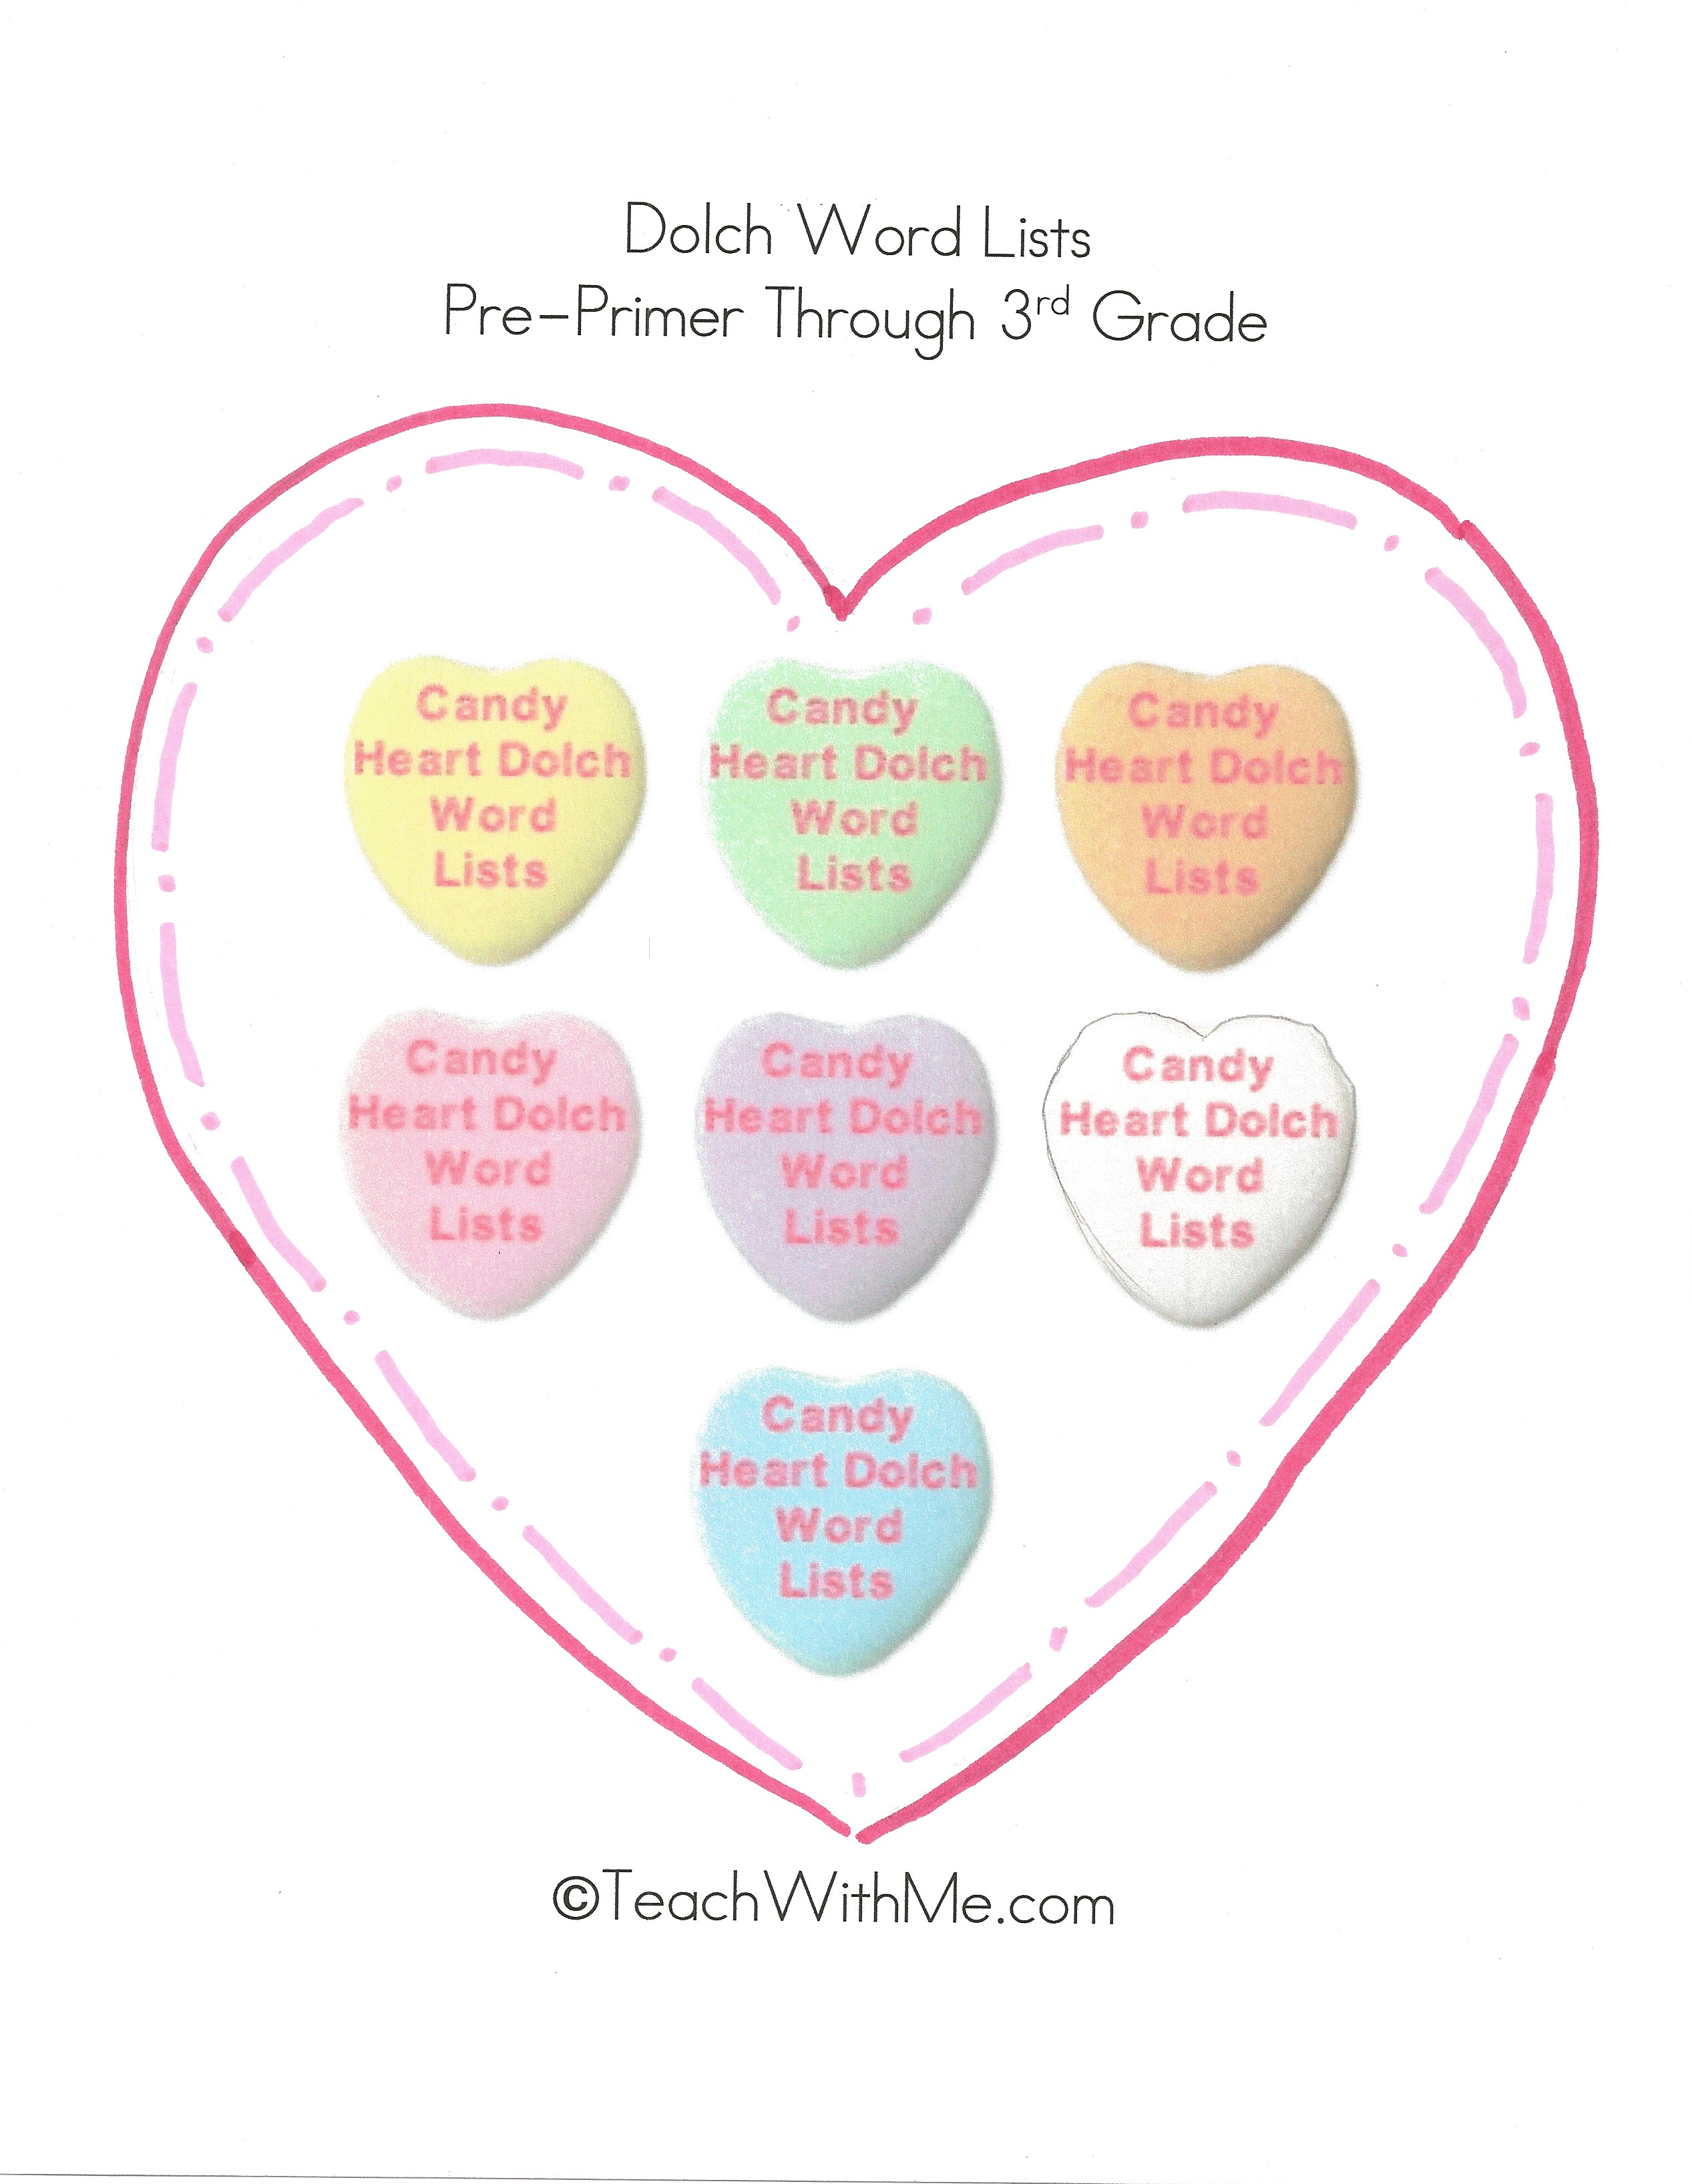 candy heart ideas, candy heart activities, candy heart math, candy heart graphs, candy heart centers, candy heart patterns, candy heart pattern mat, candy heart booklet, candy heart certificate, candy heart estimation,